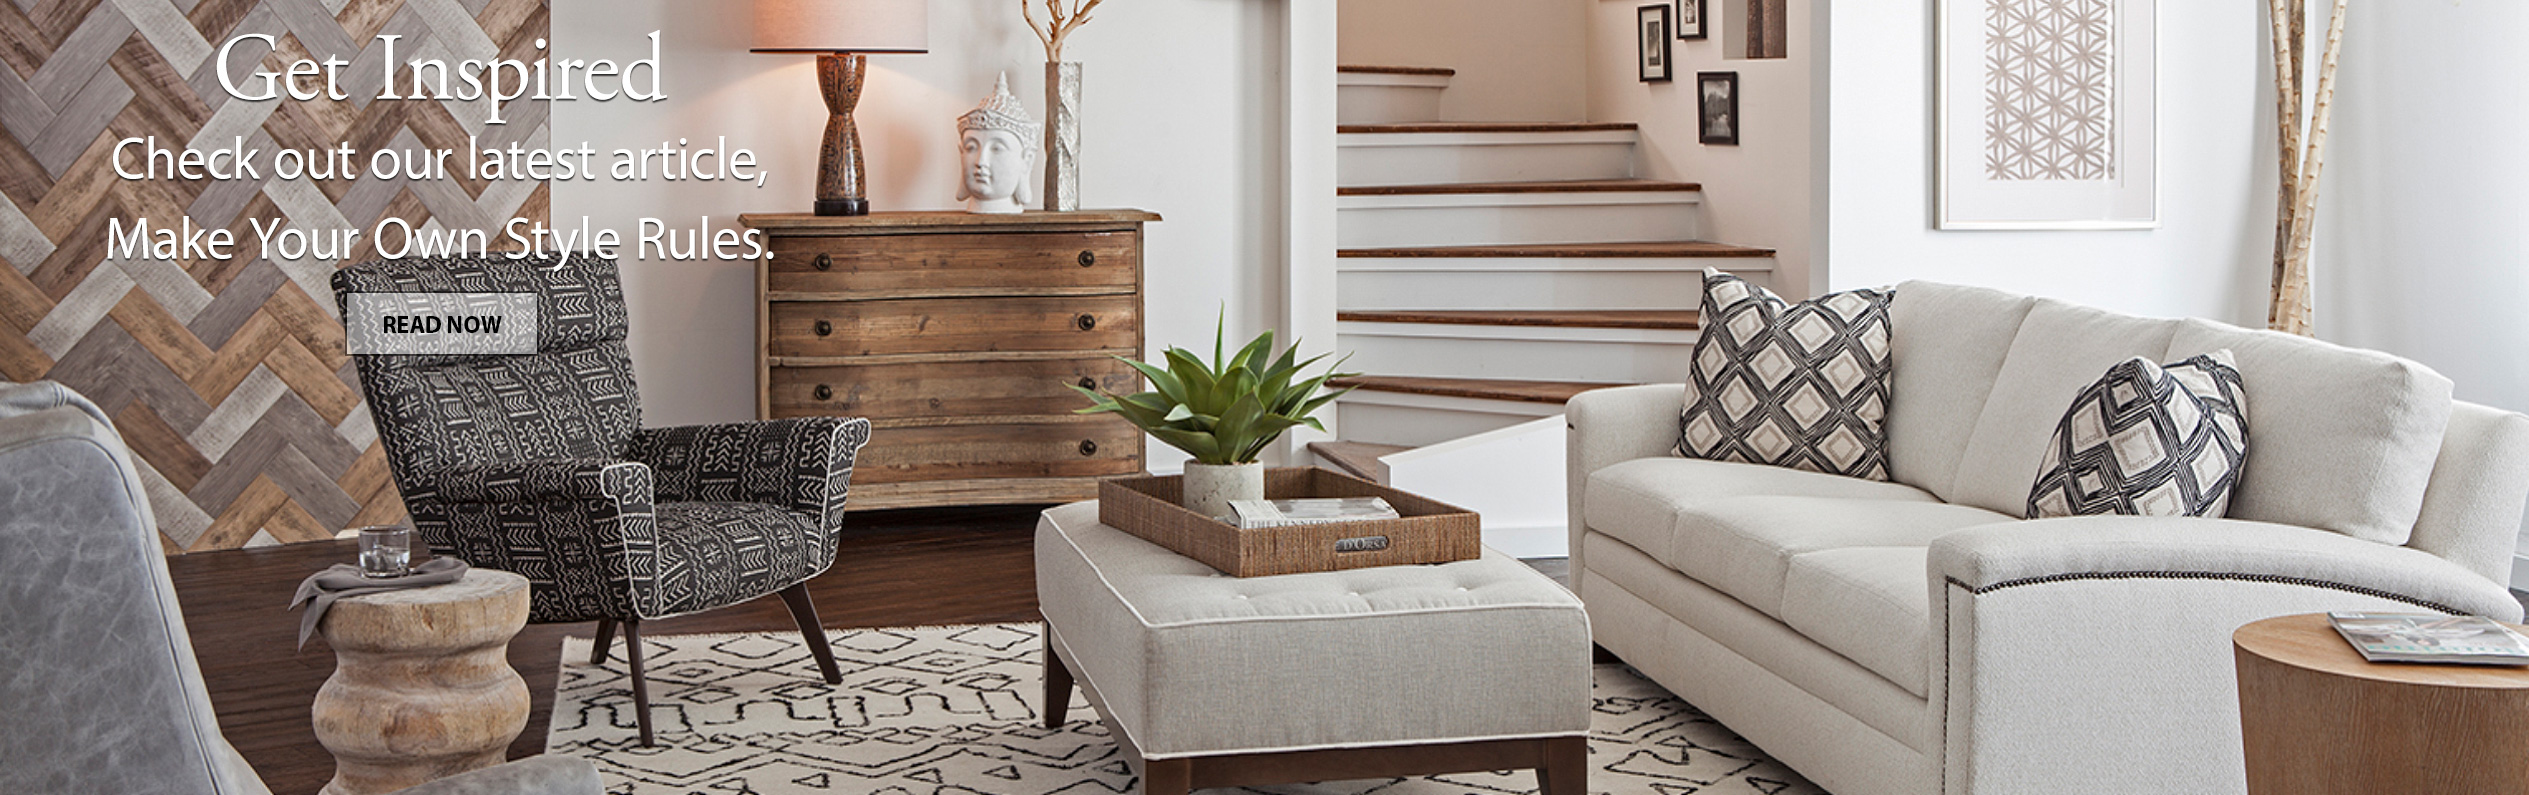 make your own style rules jordan s furniture life and style blog